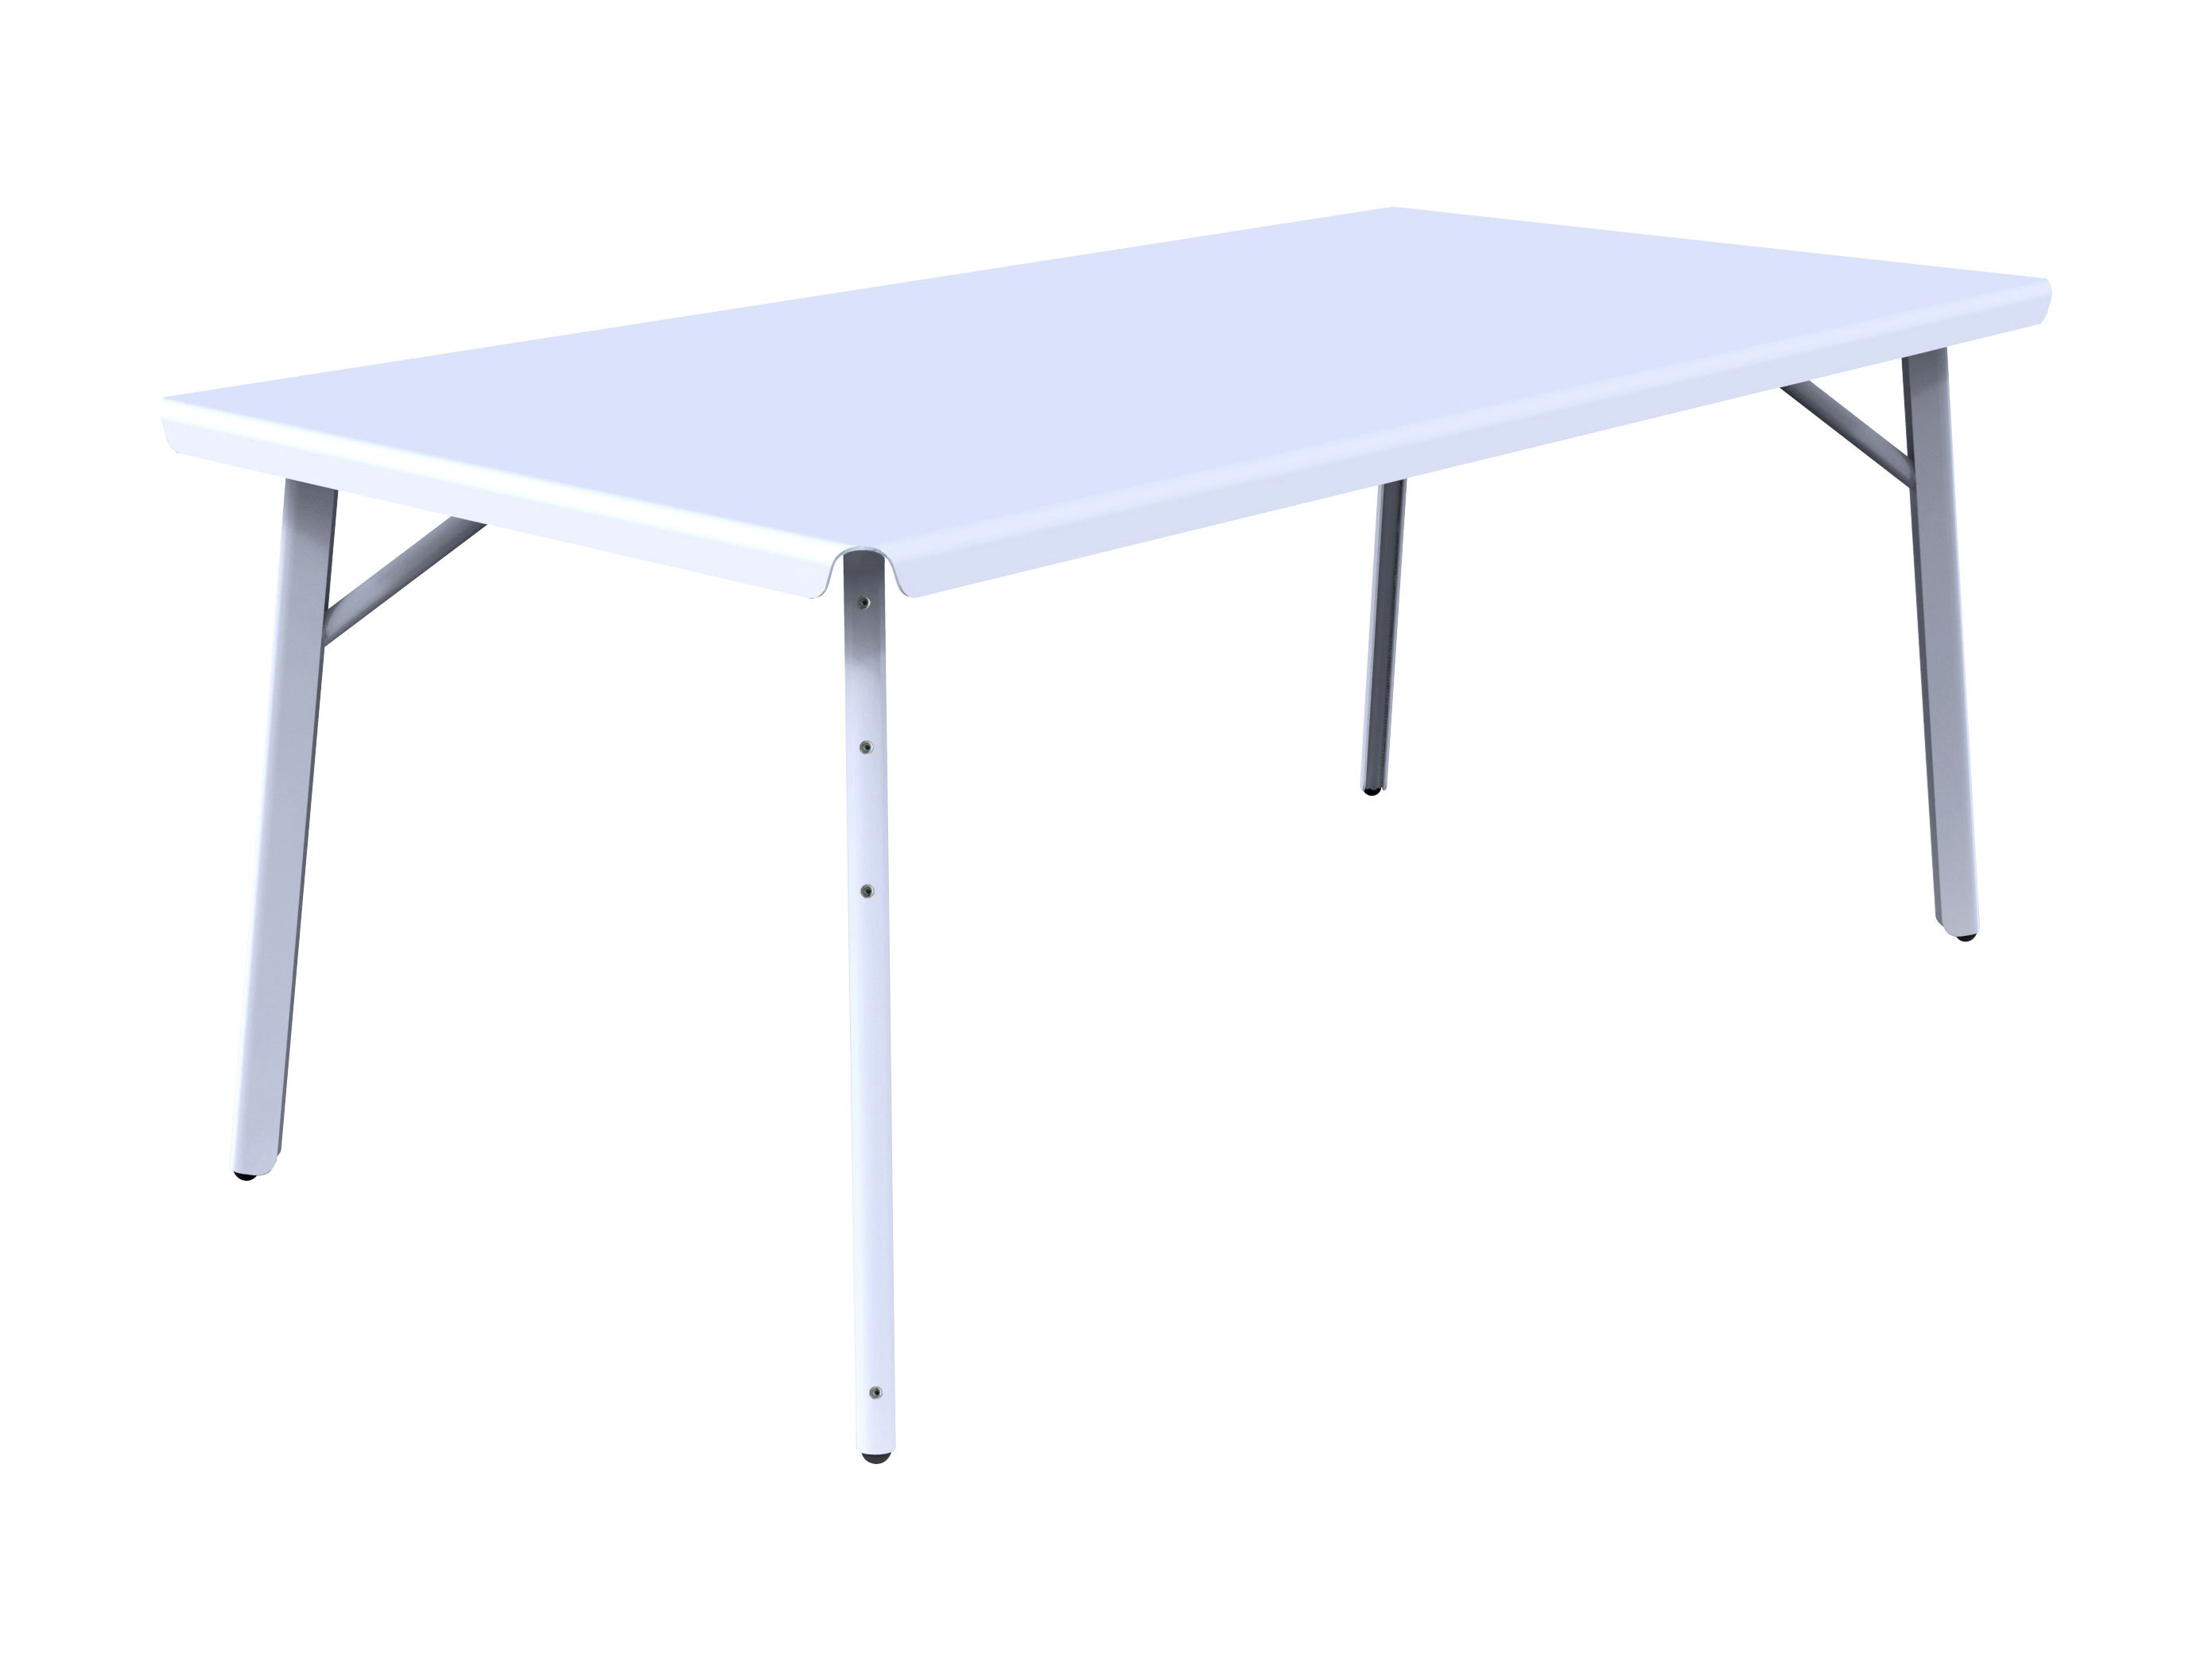 Outdoor - Garden Tables - Dakar Table rectangulaire - L 180 x W 90 cm by Skitsch - L 180 cm - White - Aluminium, Steel